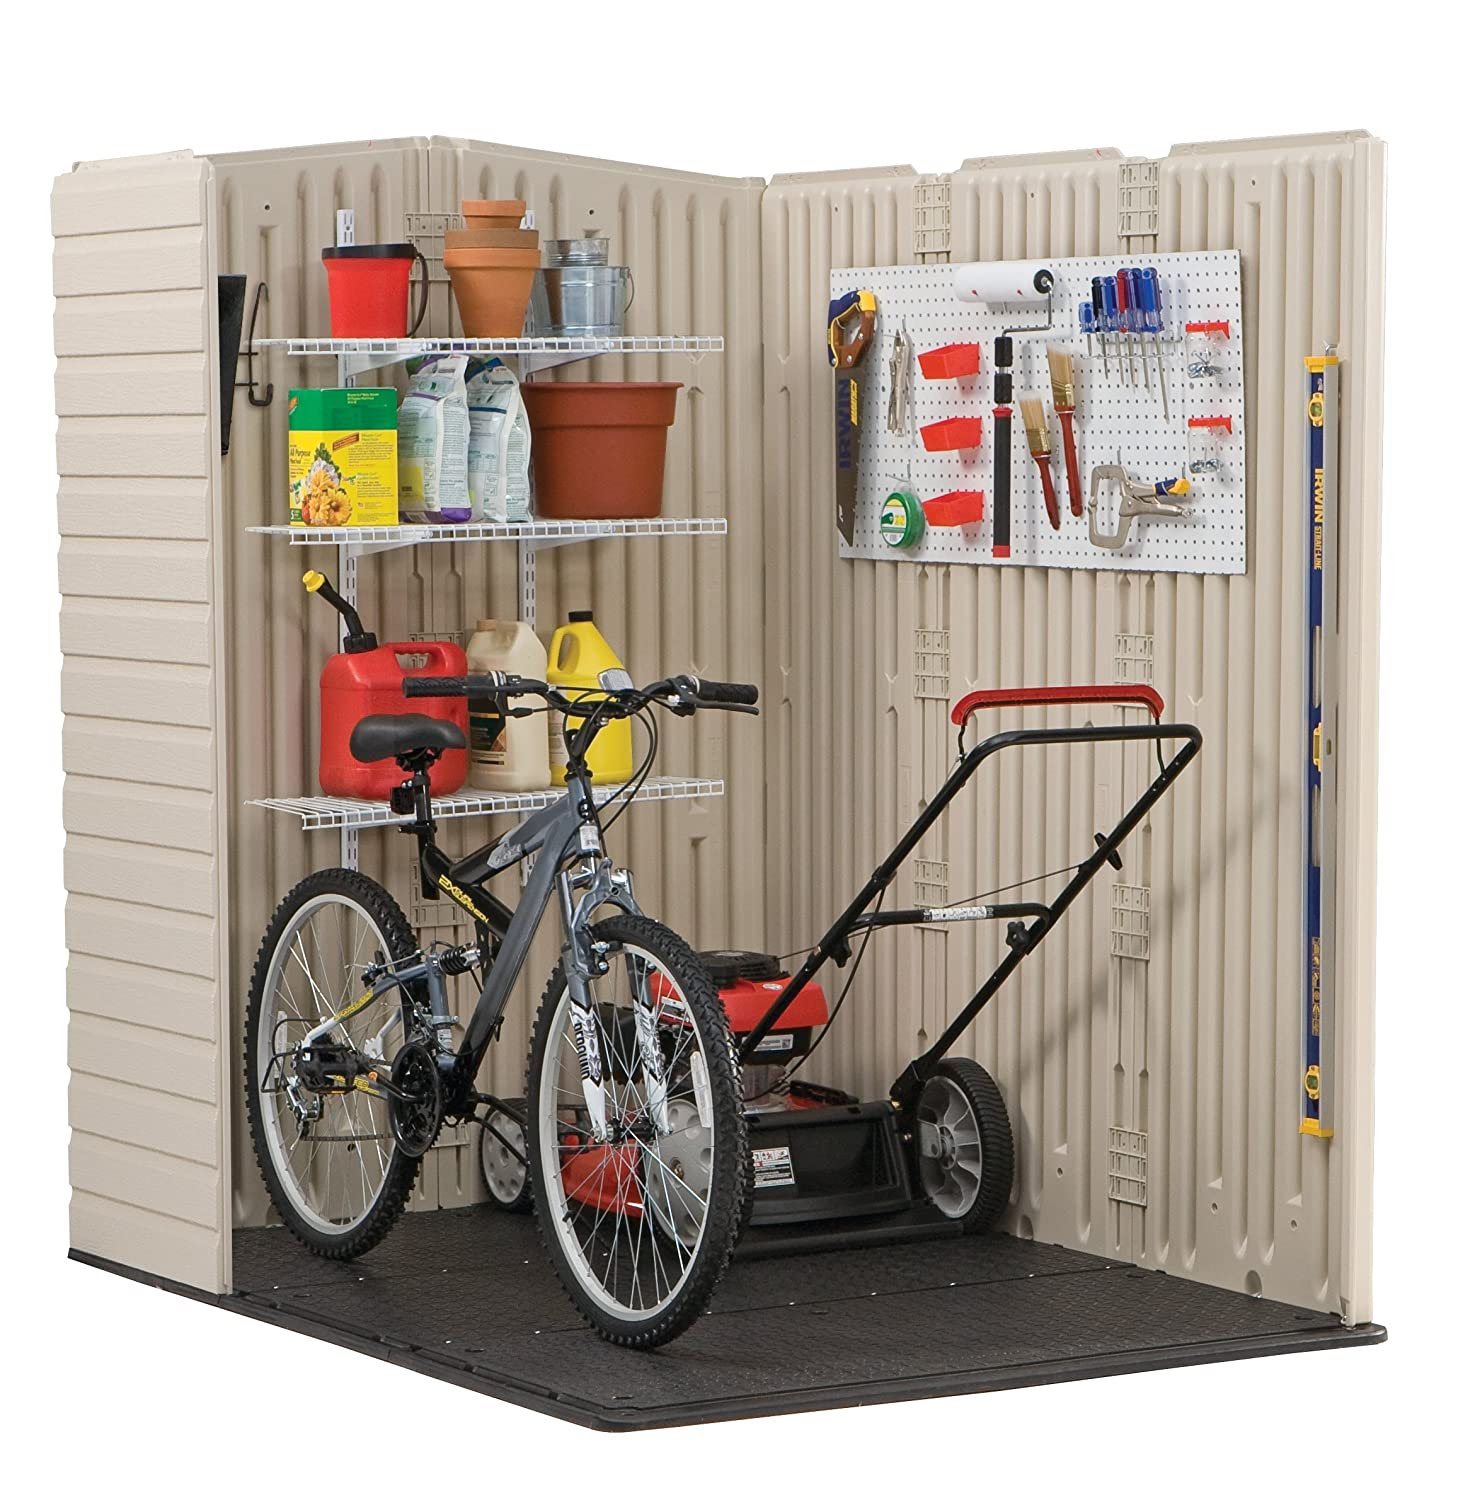 Amazon.com : Rubbermaid Plastic Large Outdoor Storage Shed, 159 cu ...